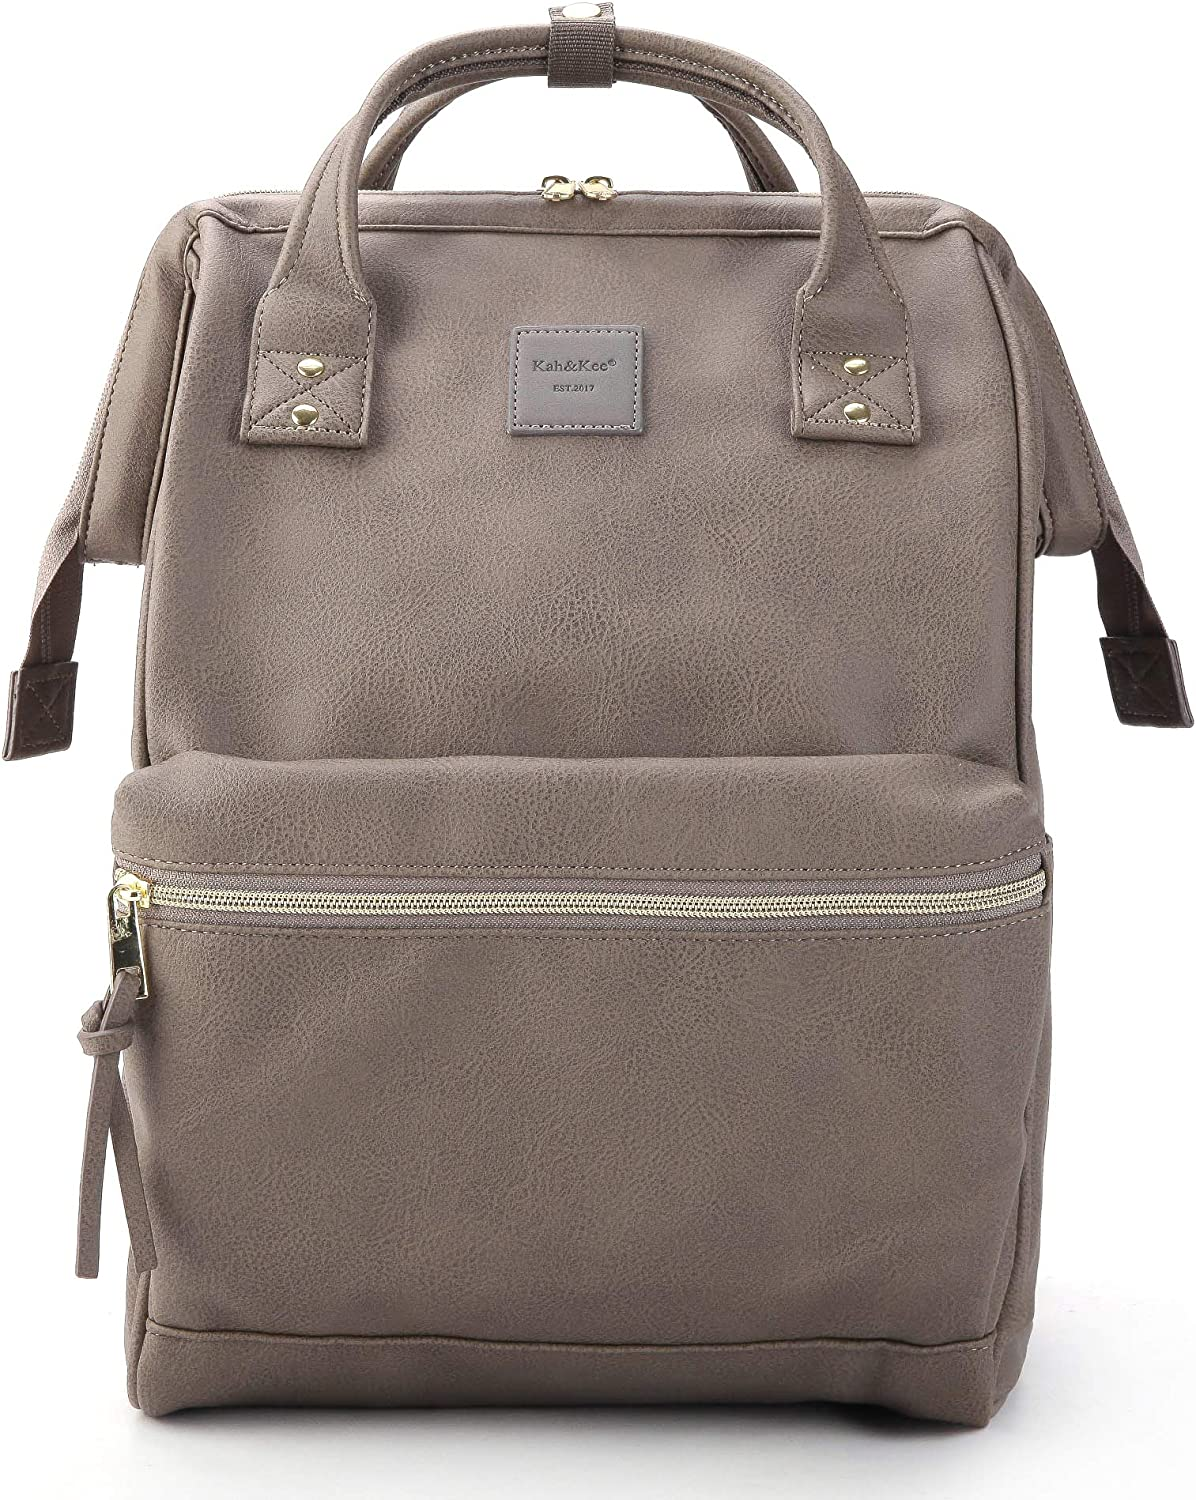 Kah&Kee Leather Backpack Diaper Bag with Laptop Compartment Travel School for Women Man (Gray, Large)